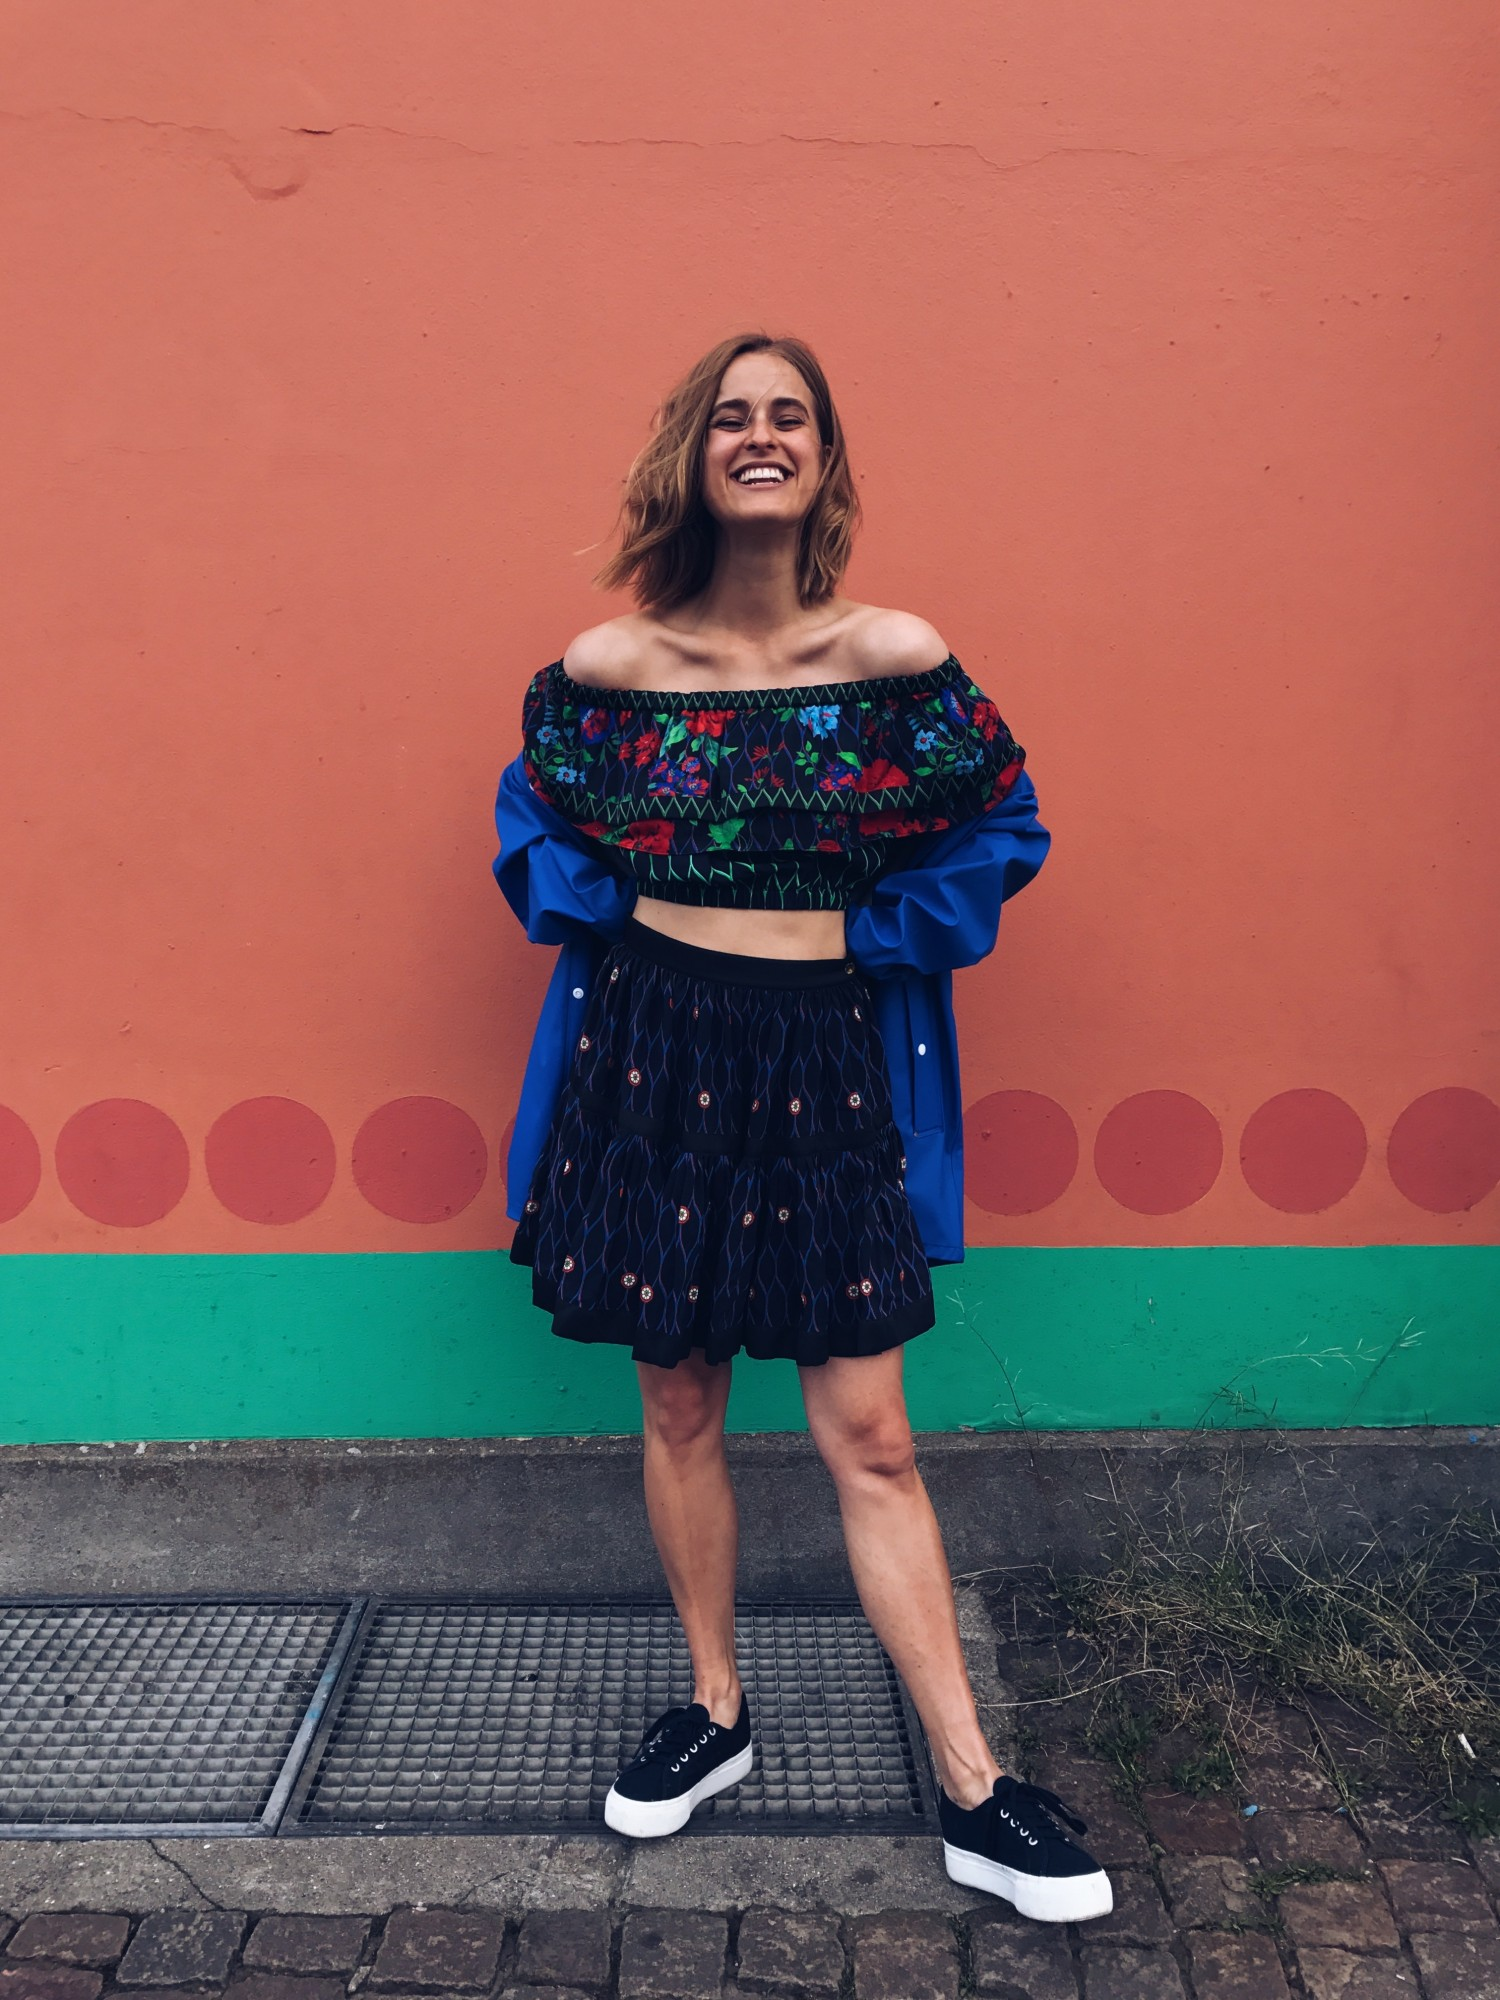 Rockpaperdresses, cathrine Widunok Wichmand, Palads Biograf, H&M Kenzo